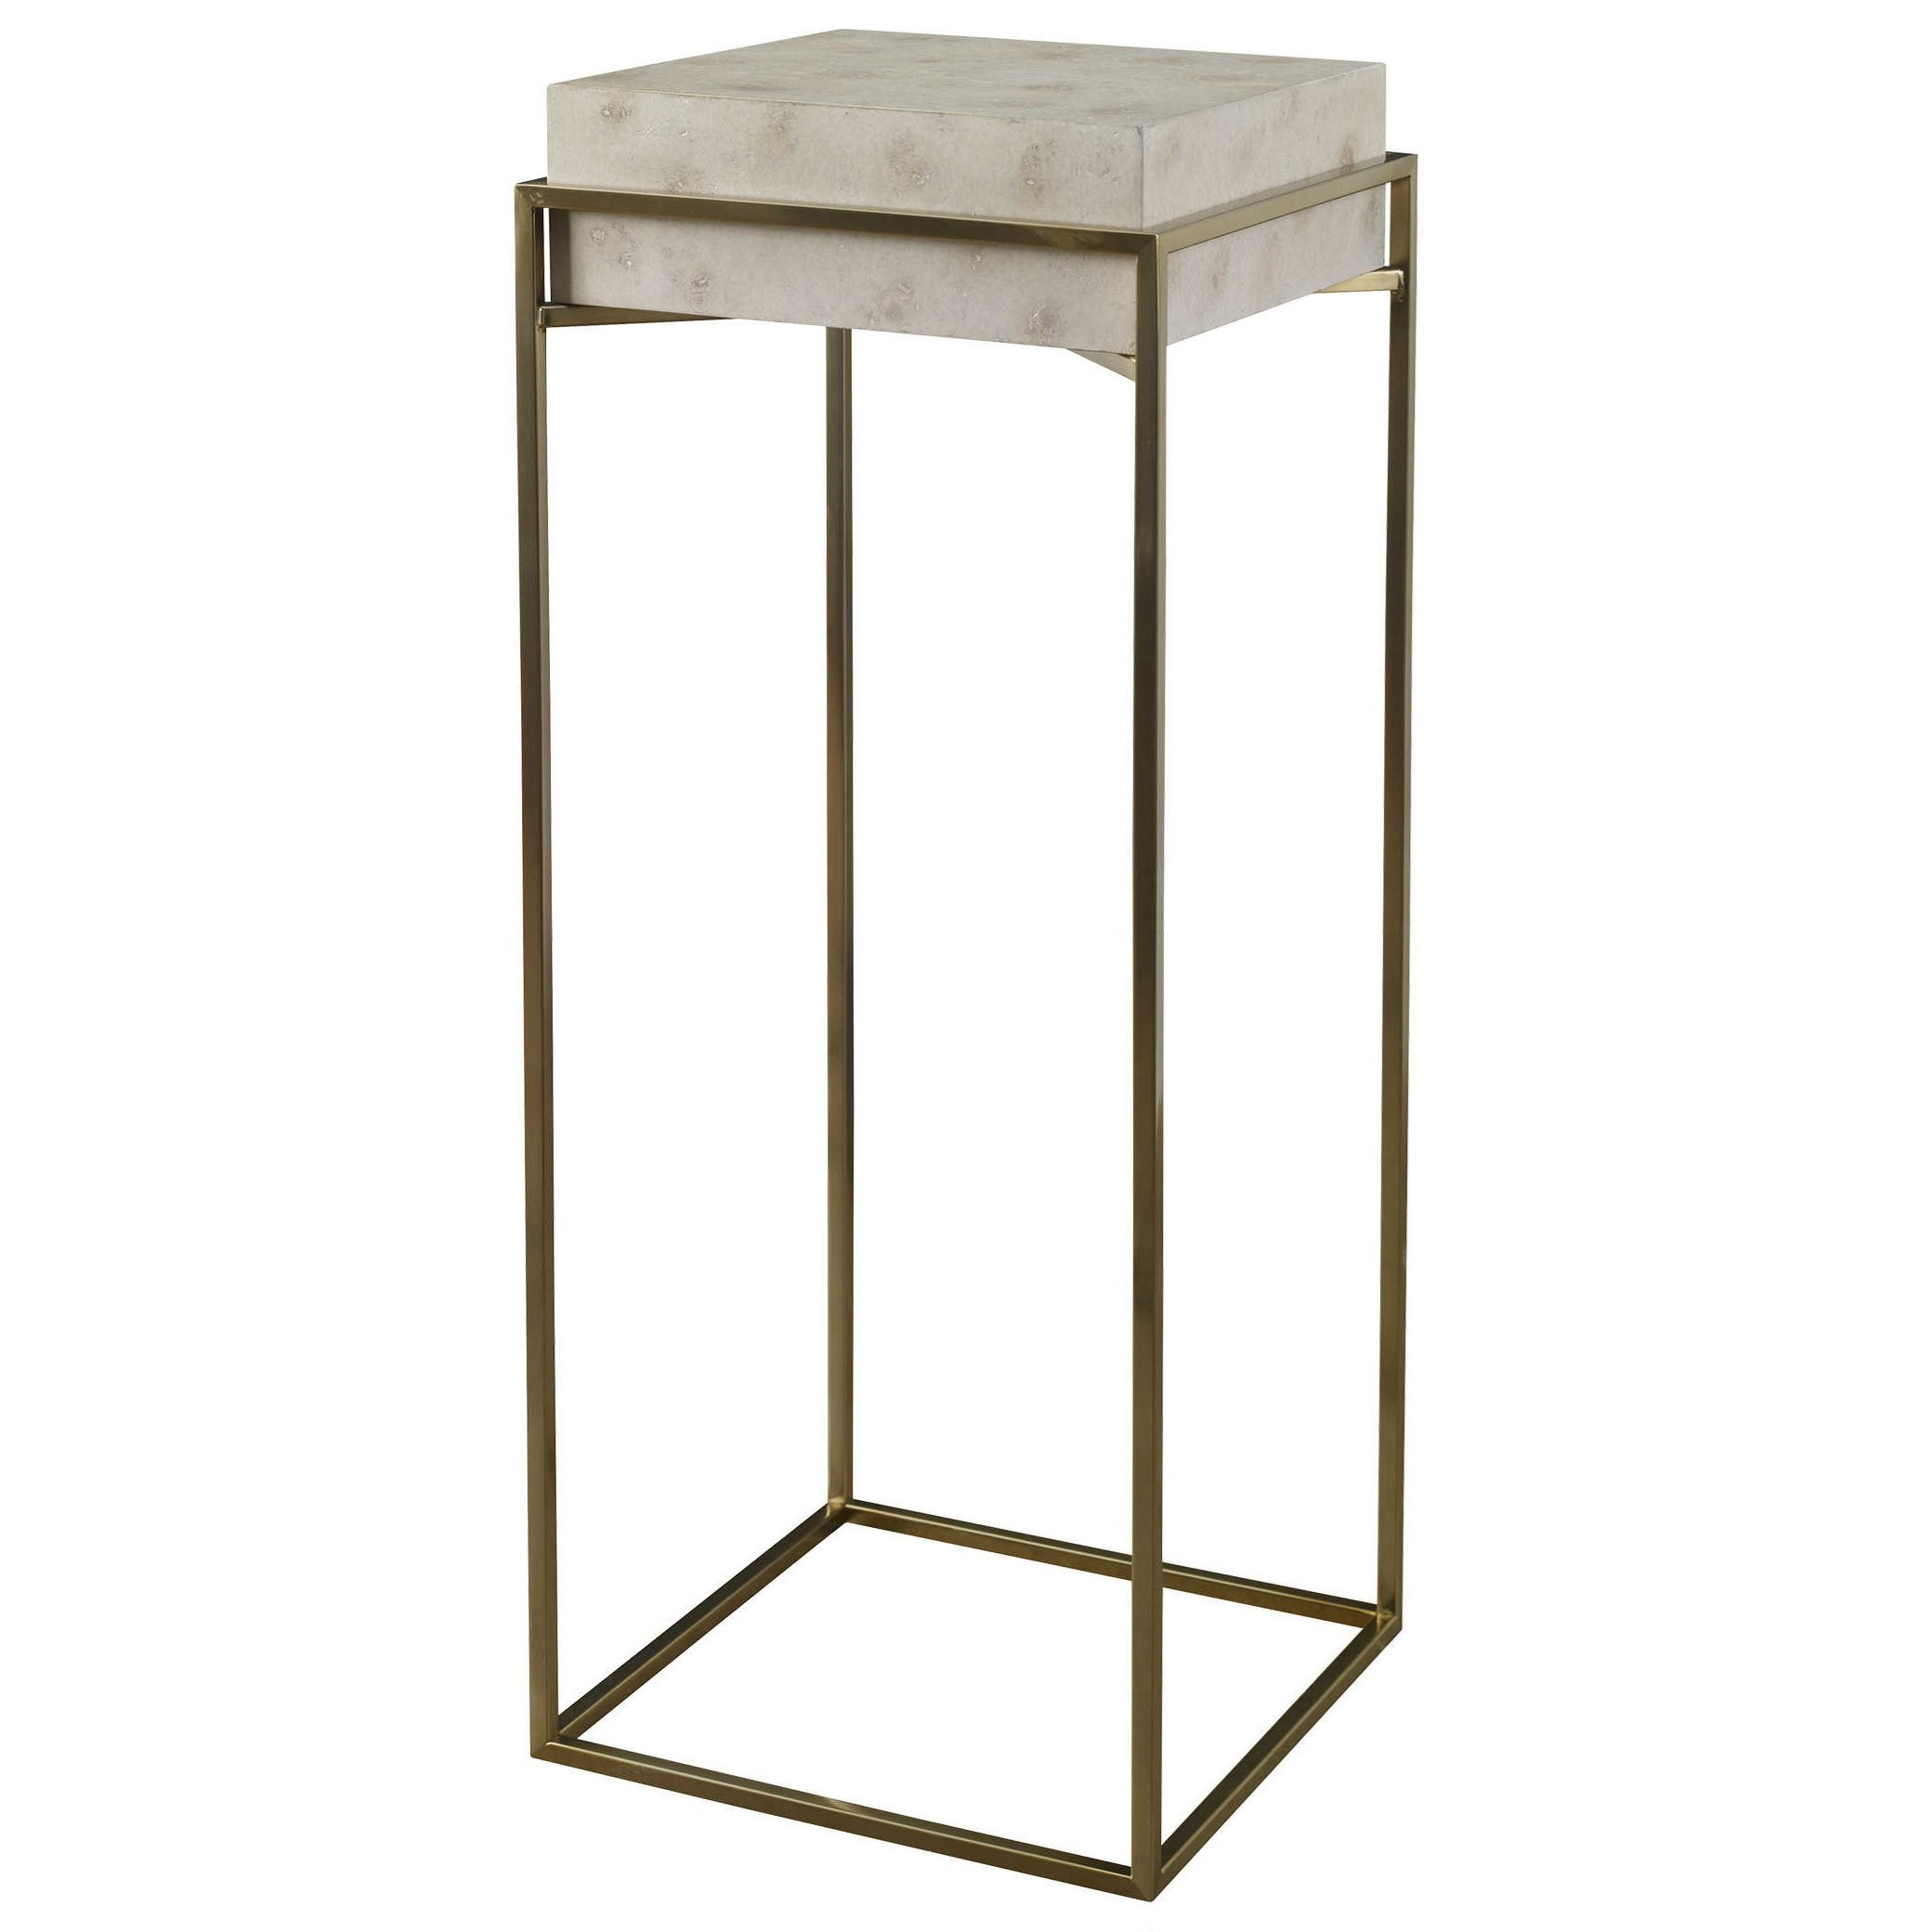 Accent Furniture - Occasional Tables Inda Modern Ivory Plant Stand by Uttermost at Del Sol Furniture